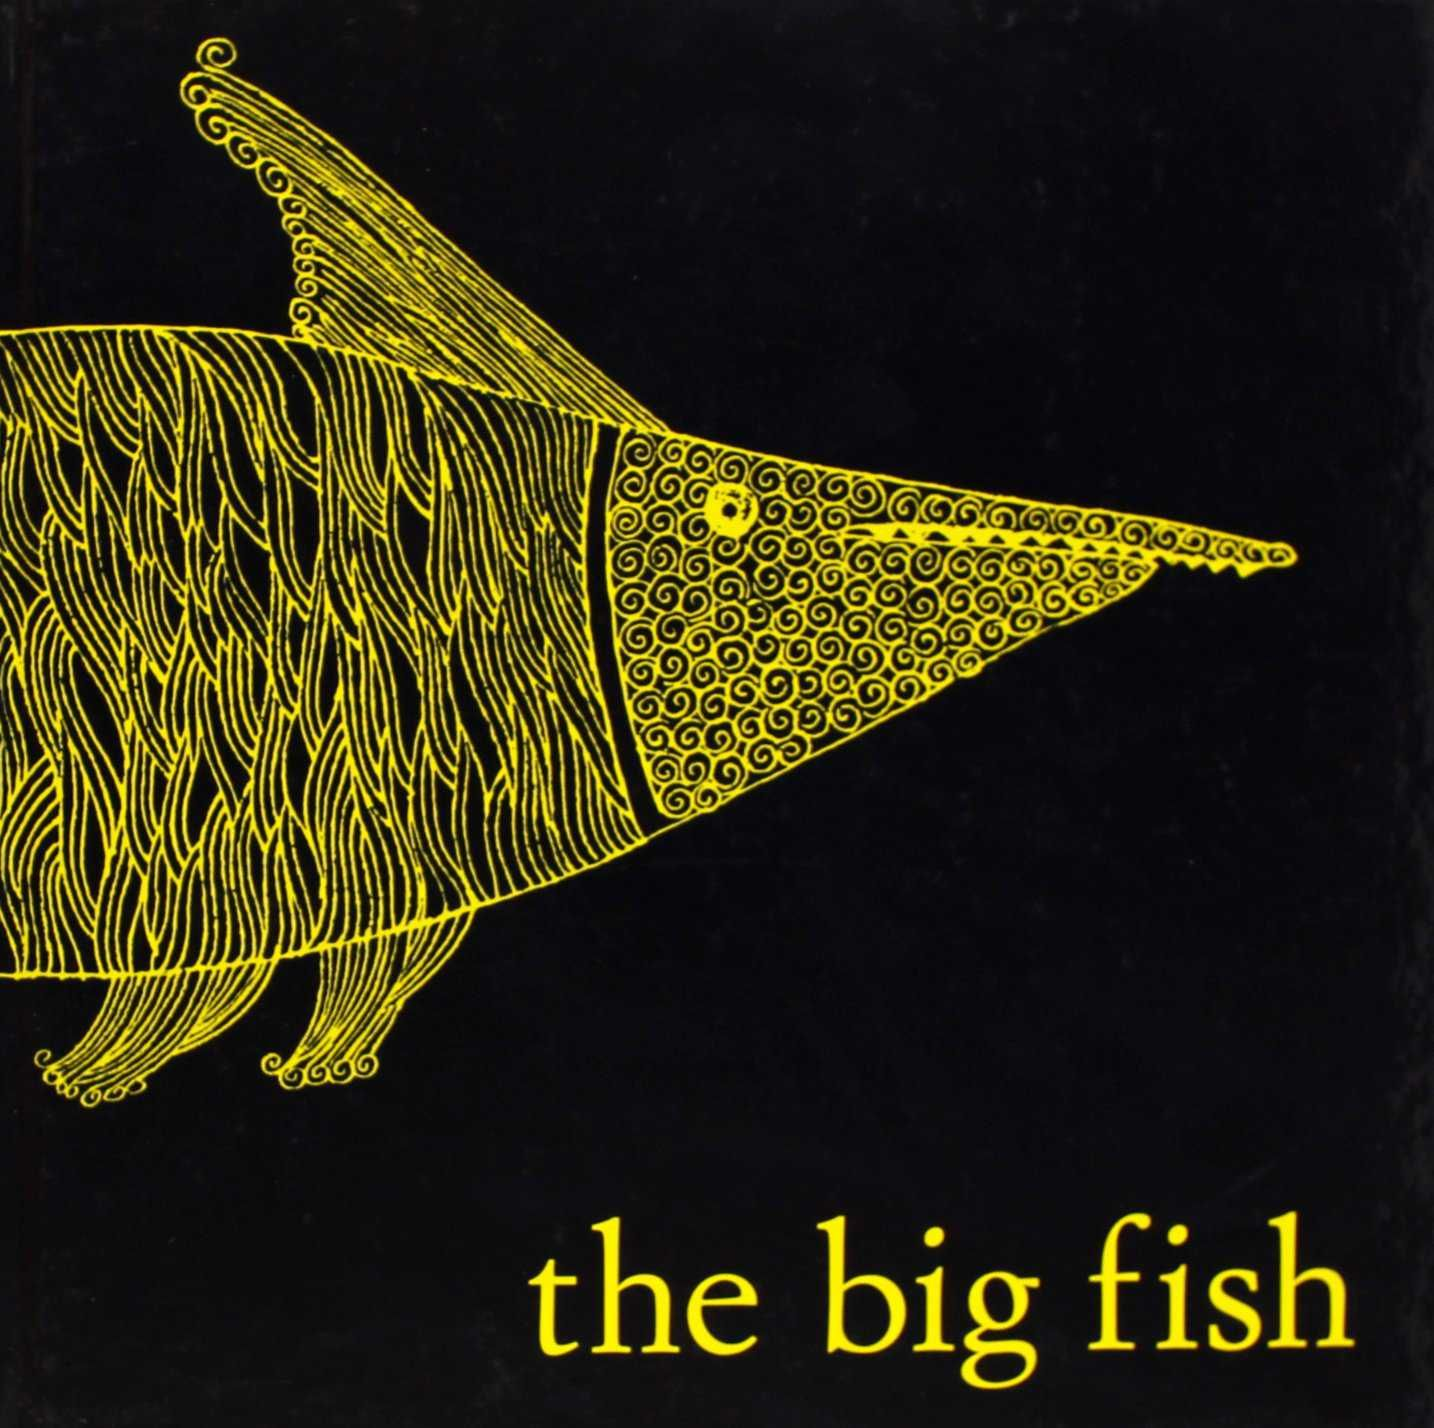 THE BIG FISH